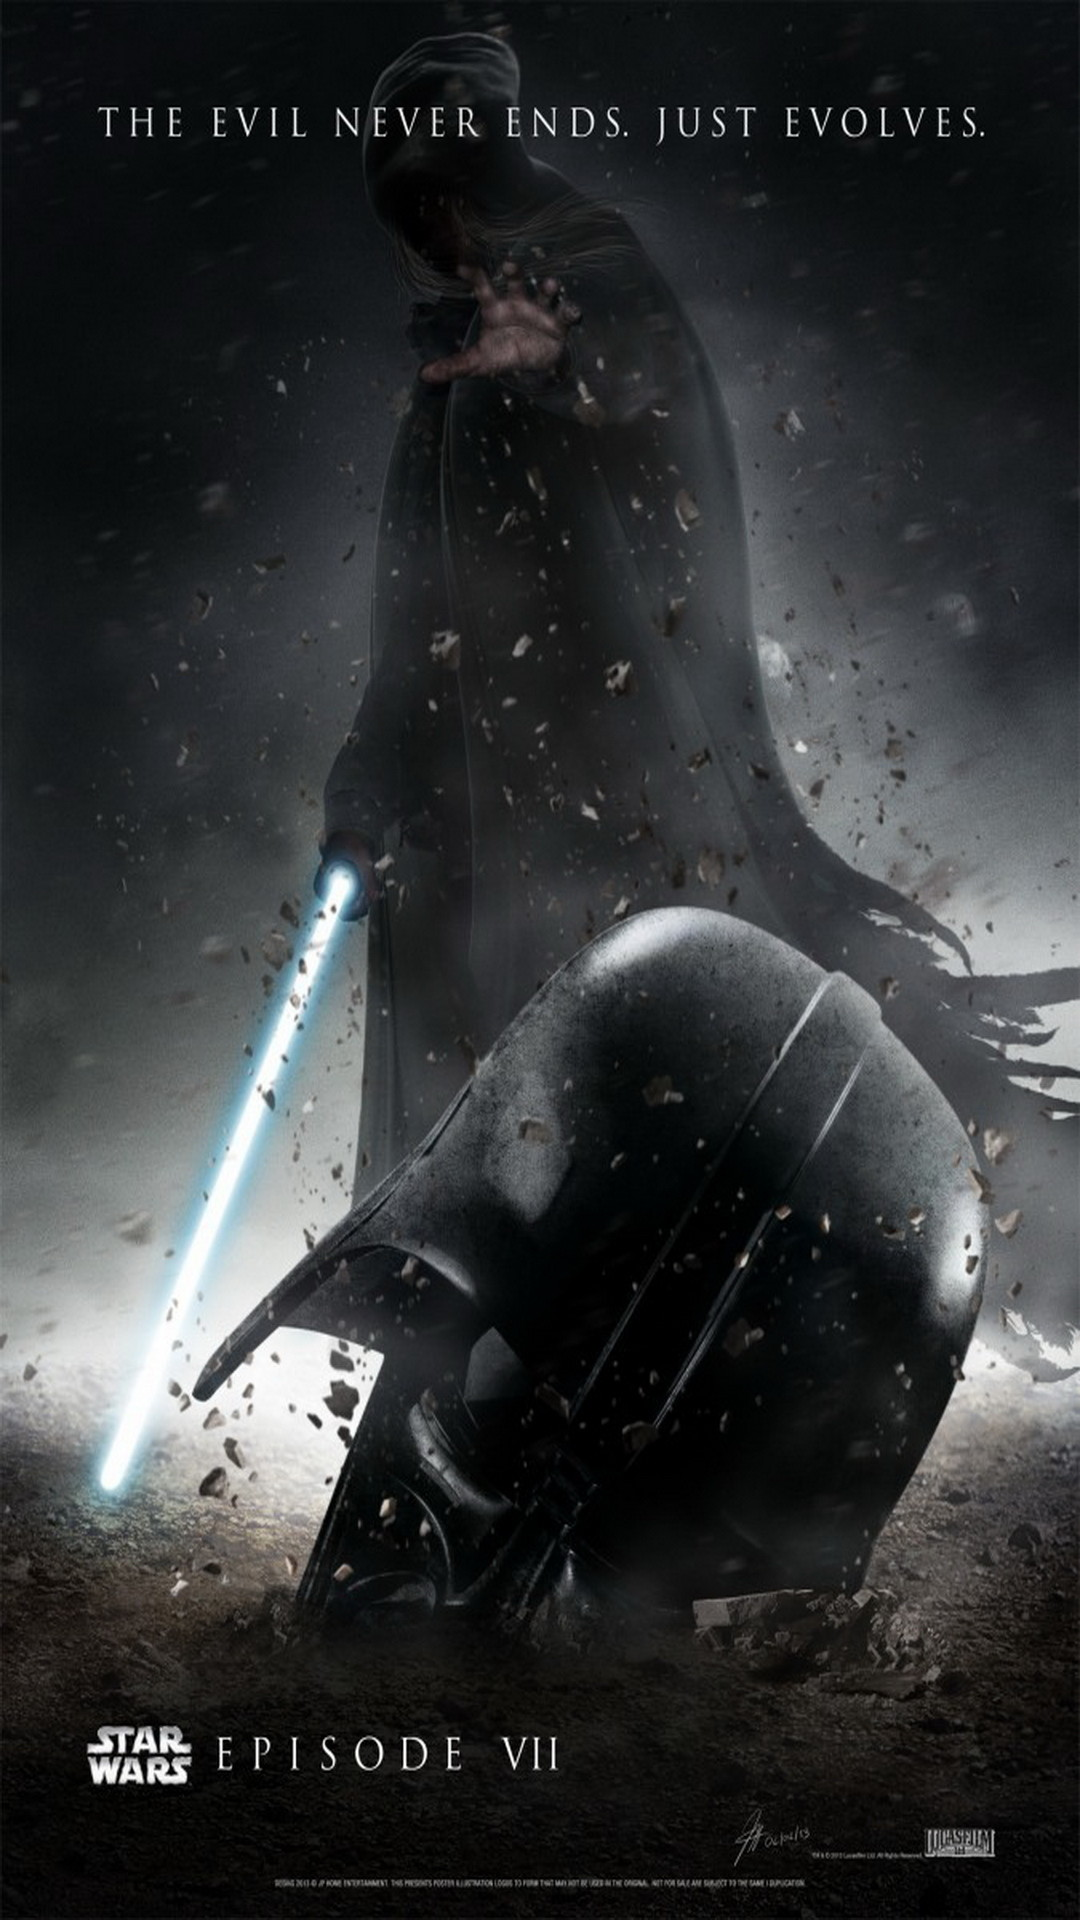 star wars iphone 6 wallpaper (89+ images)